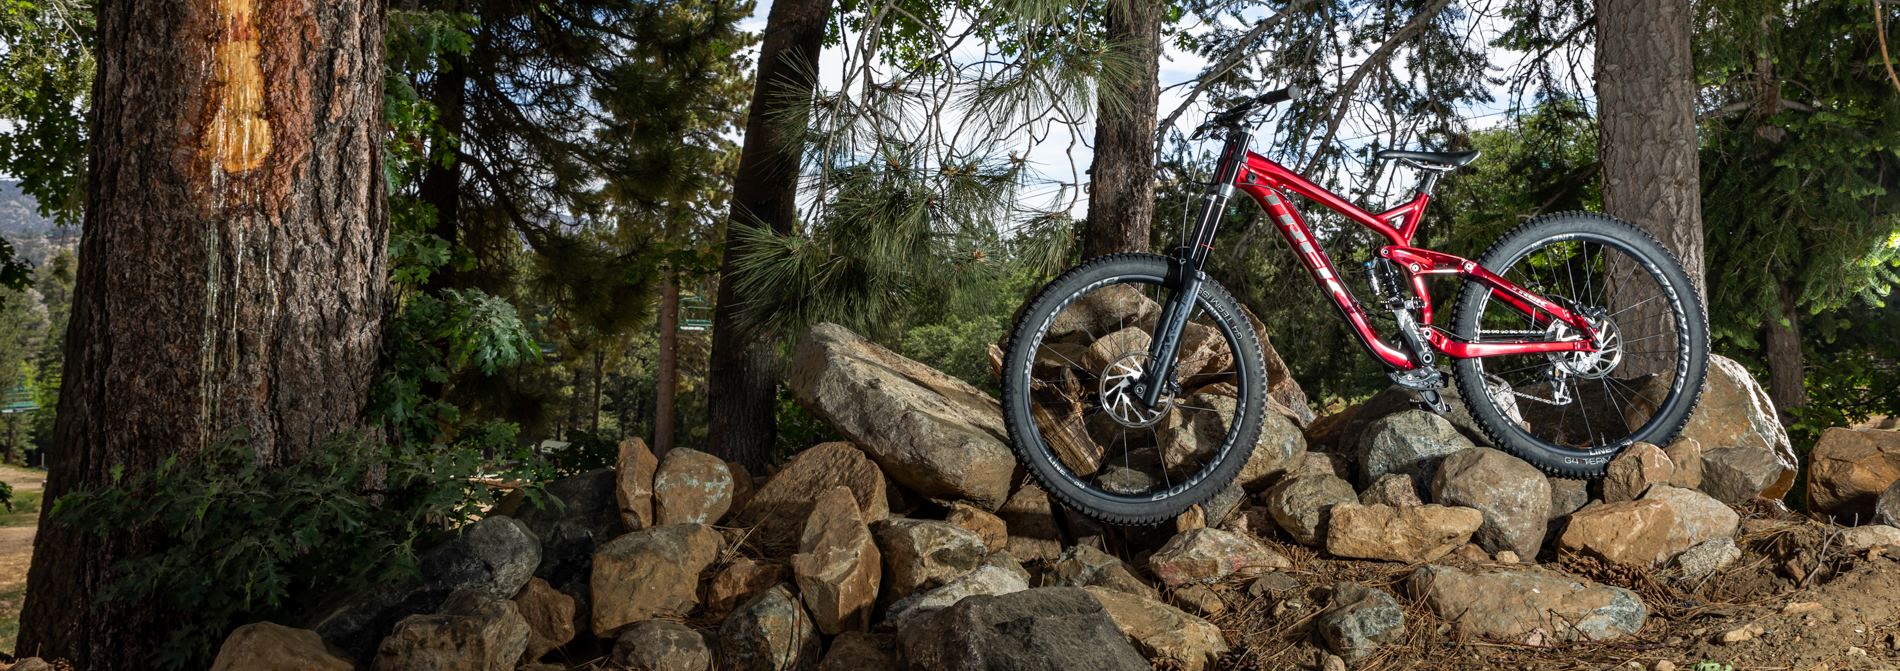 Xc Freeride And Downhill Mtb Rentals Big Bear Mountain Resort